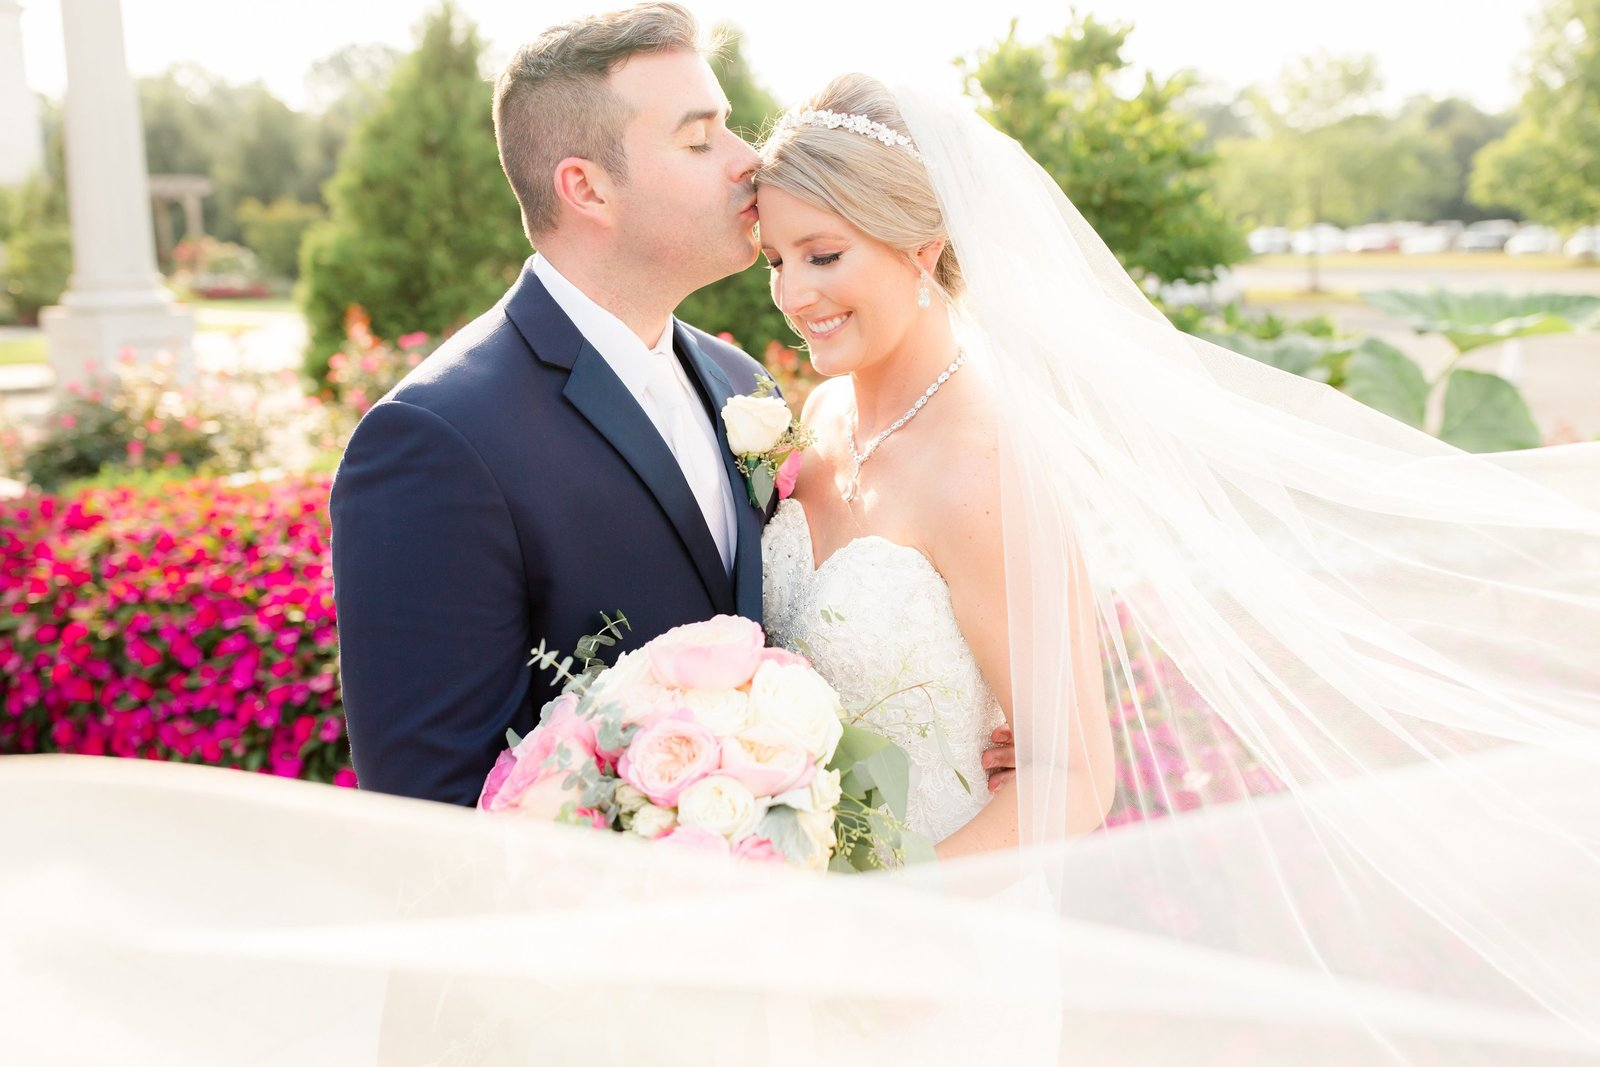 Romantic bride and groom photo at The Palace at Somerset Park